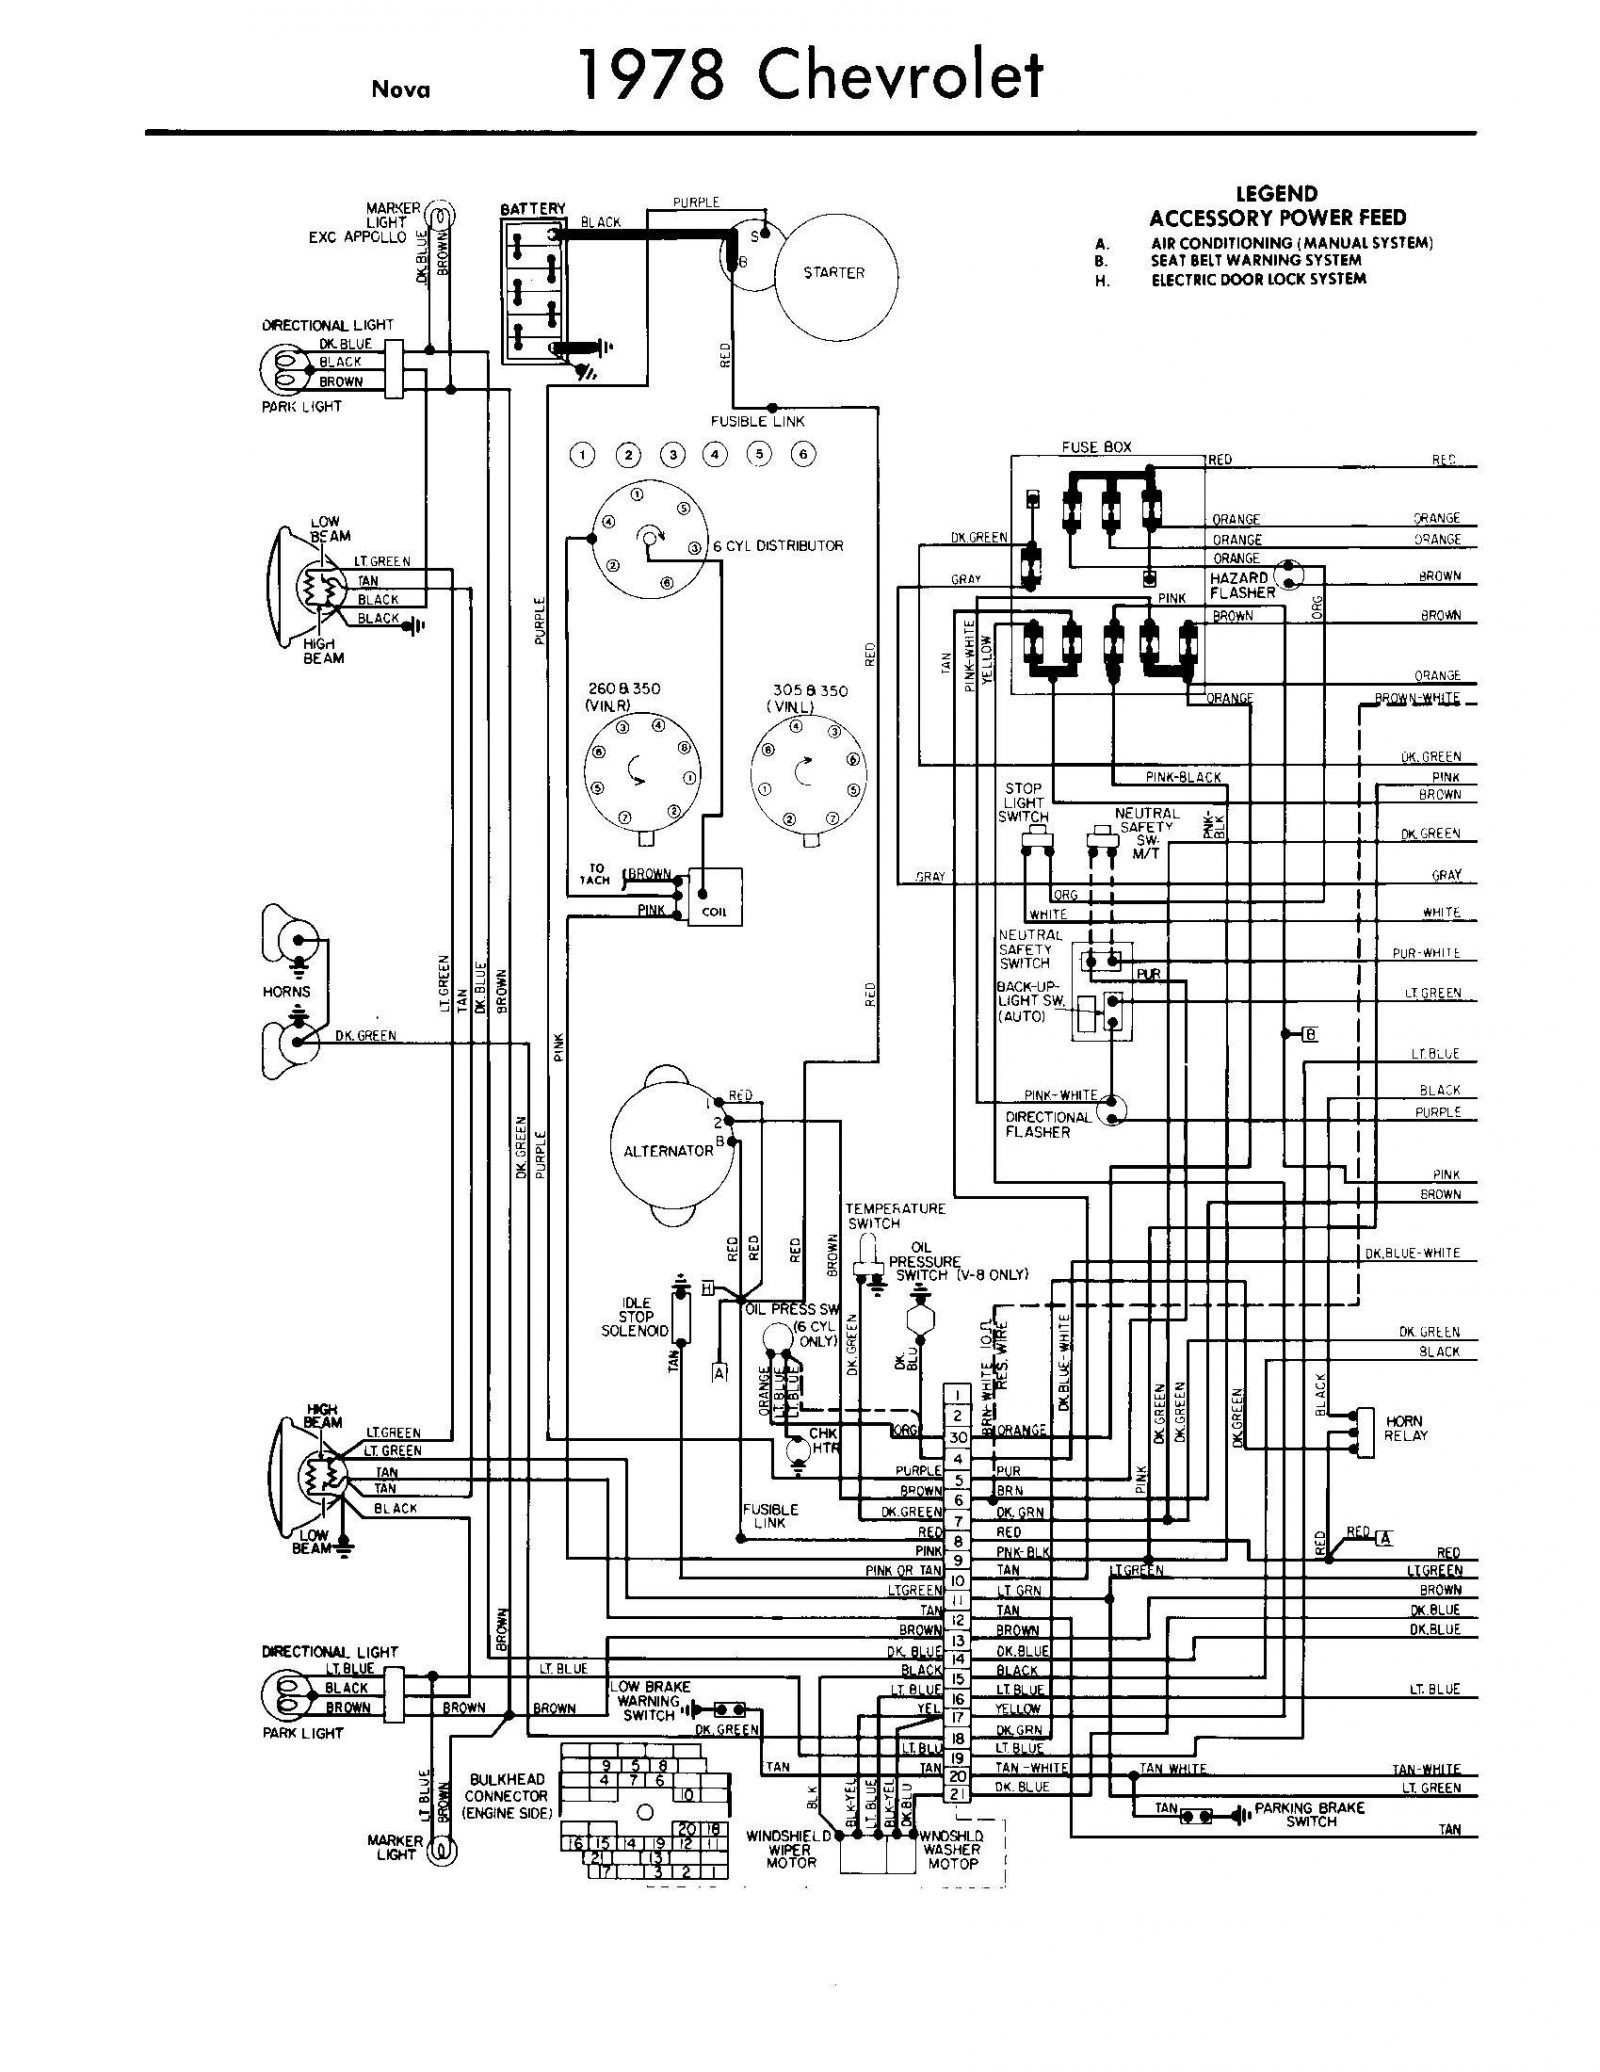 200 amp panel wiring diagram